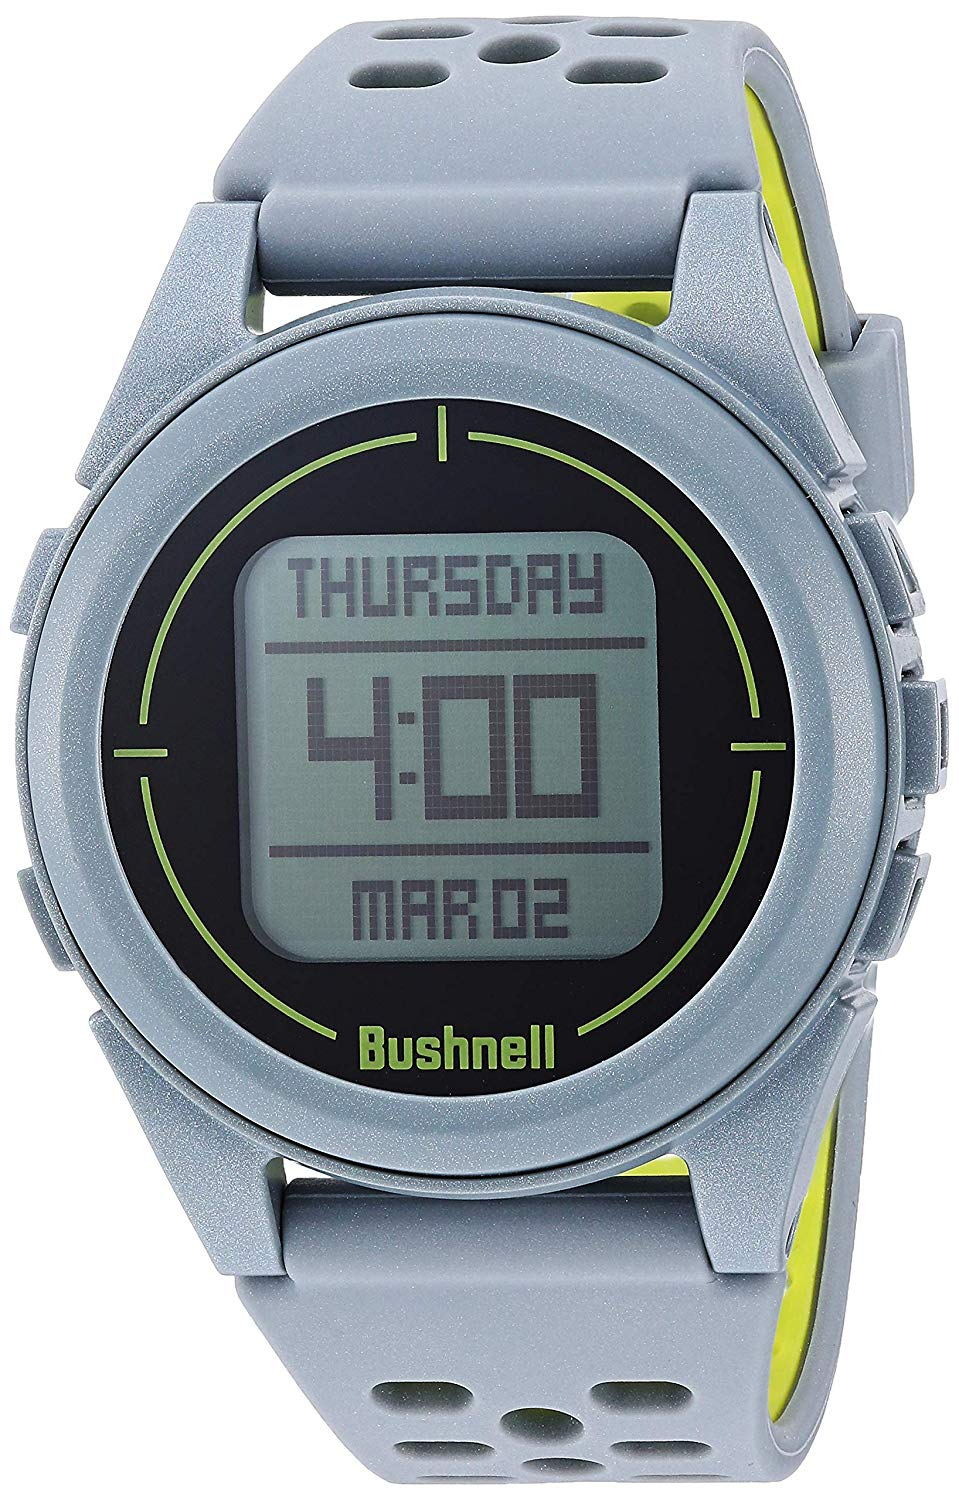 Bushnell Ion 2 Golf GPS Watch Silver/Green Color